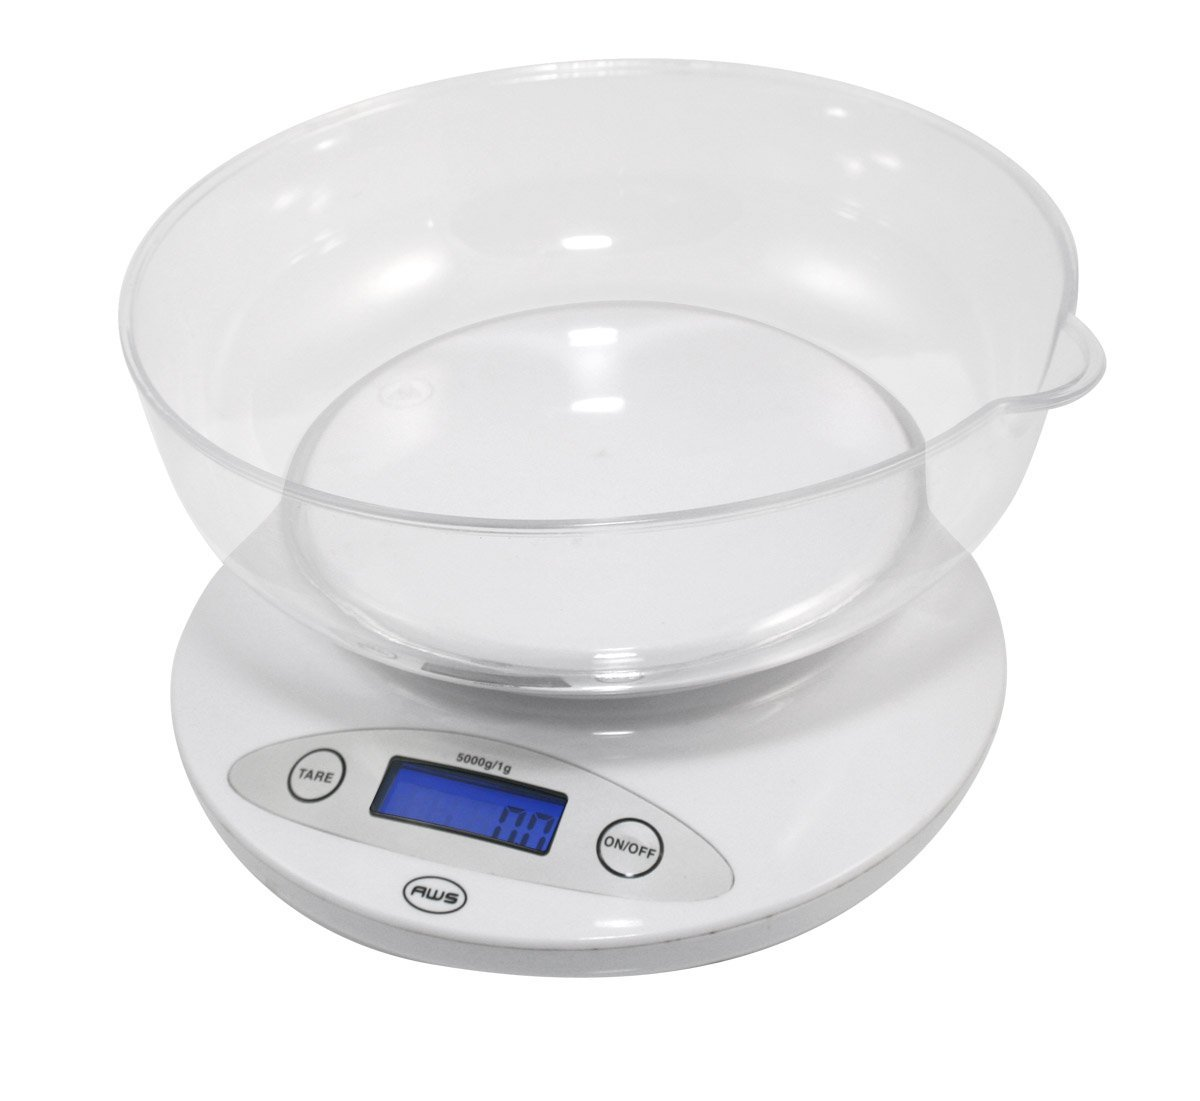 Bowl Kitchen Scale White